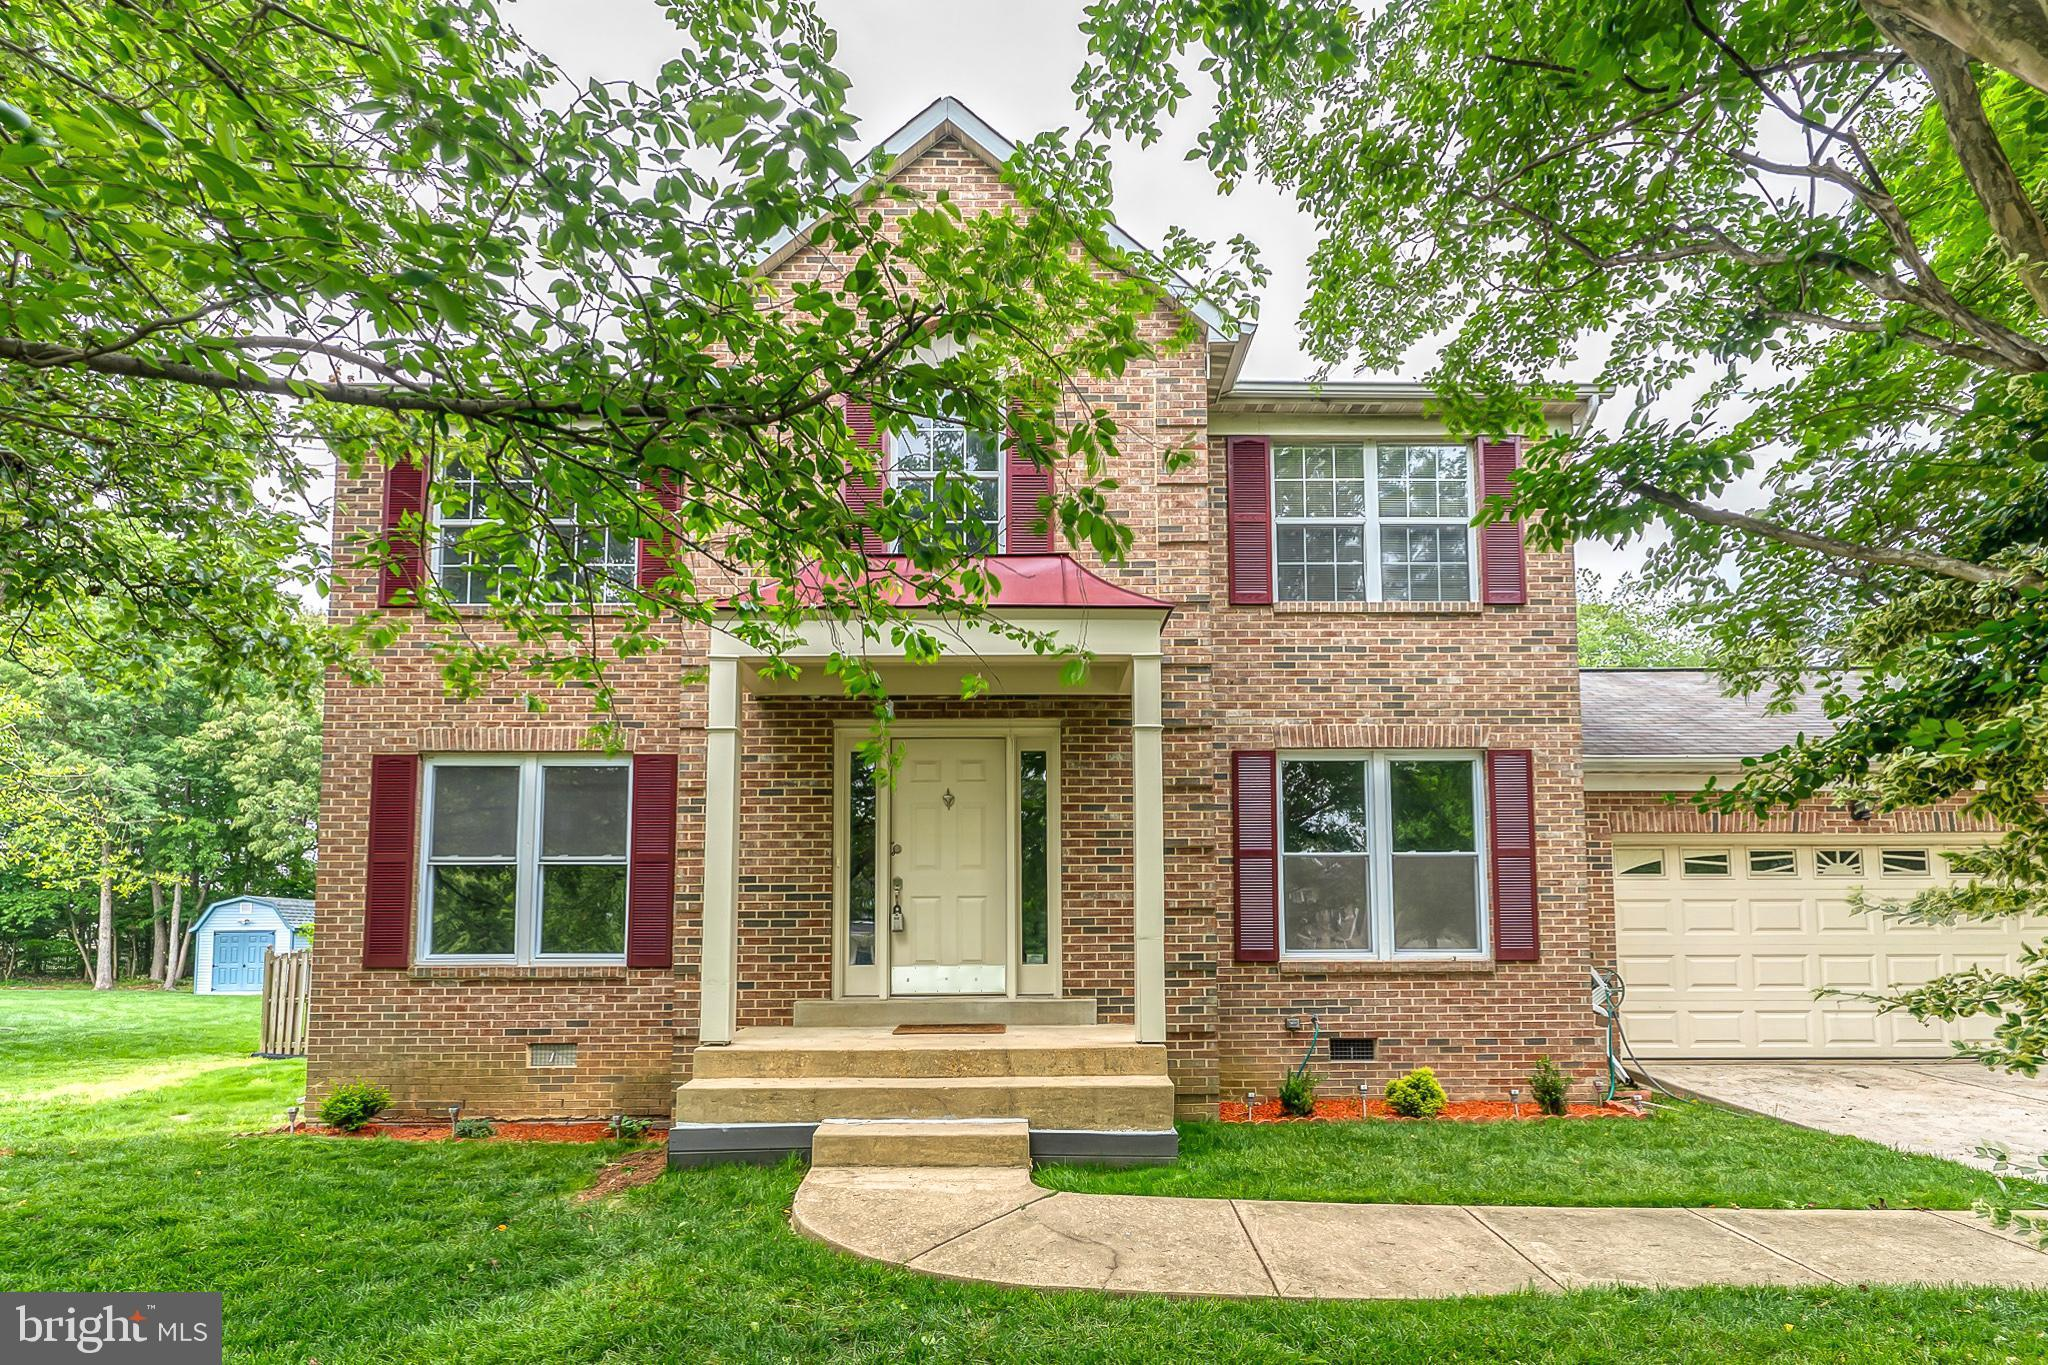 This beautiful colonial is now available! With 4 bedrooms, and 2.5 baths, this home has plenty of sp